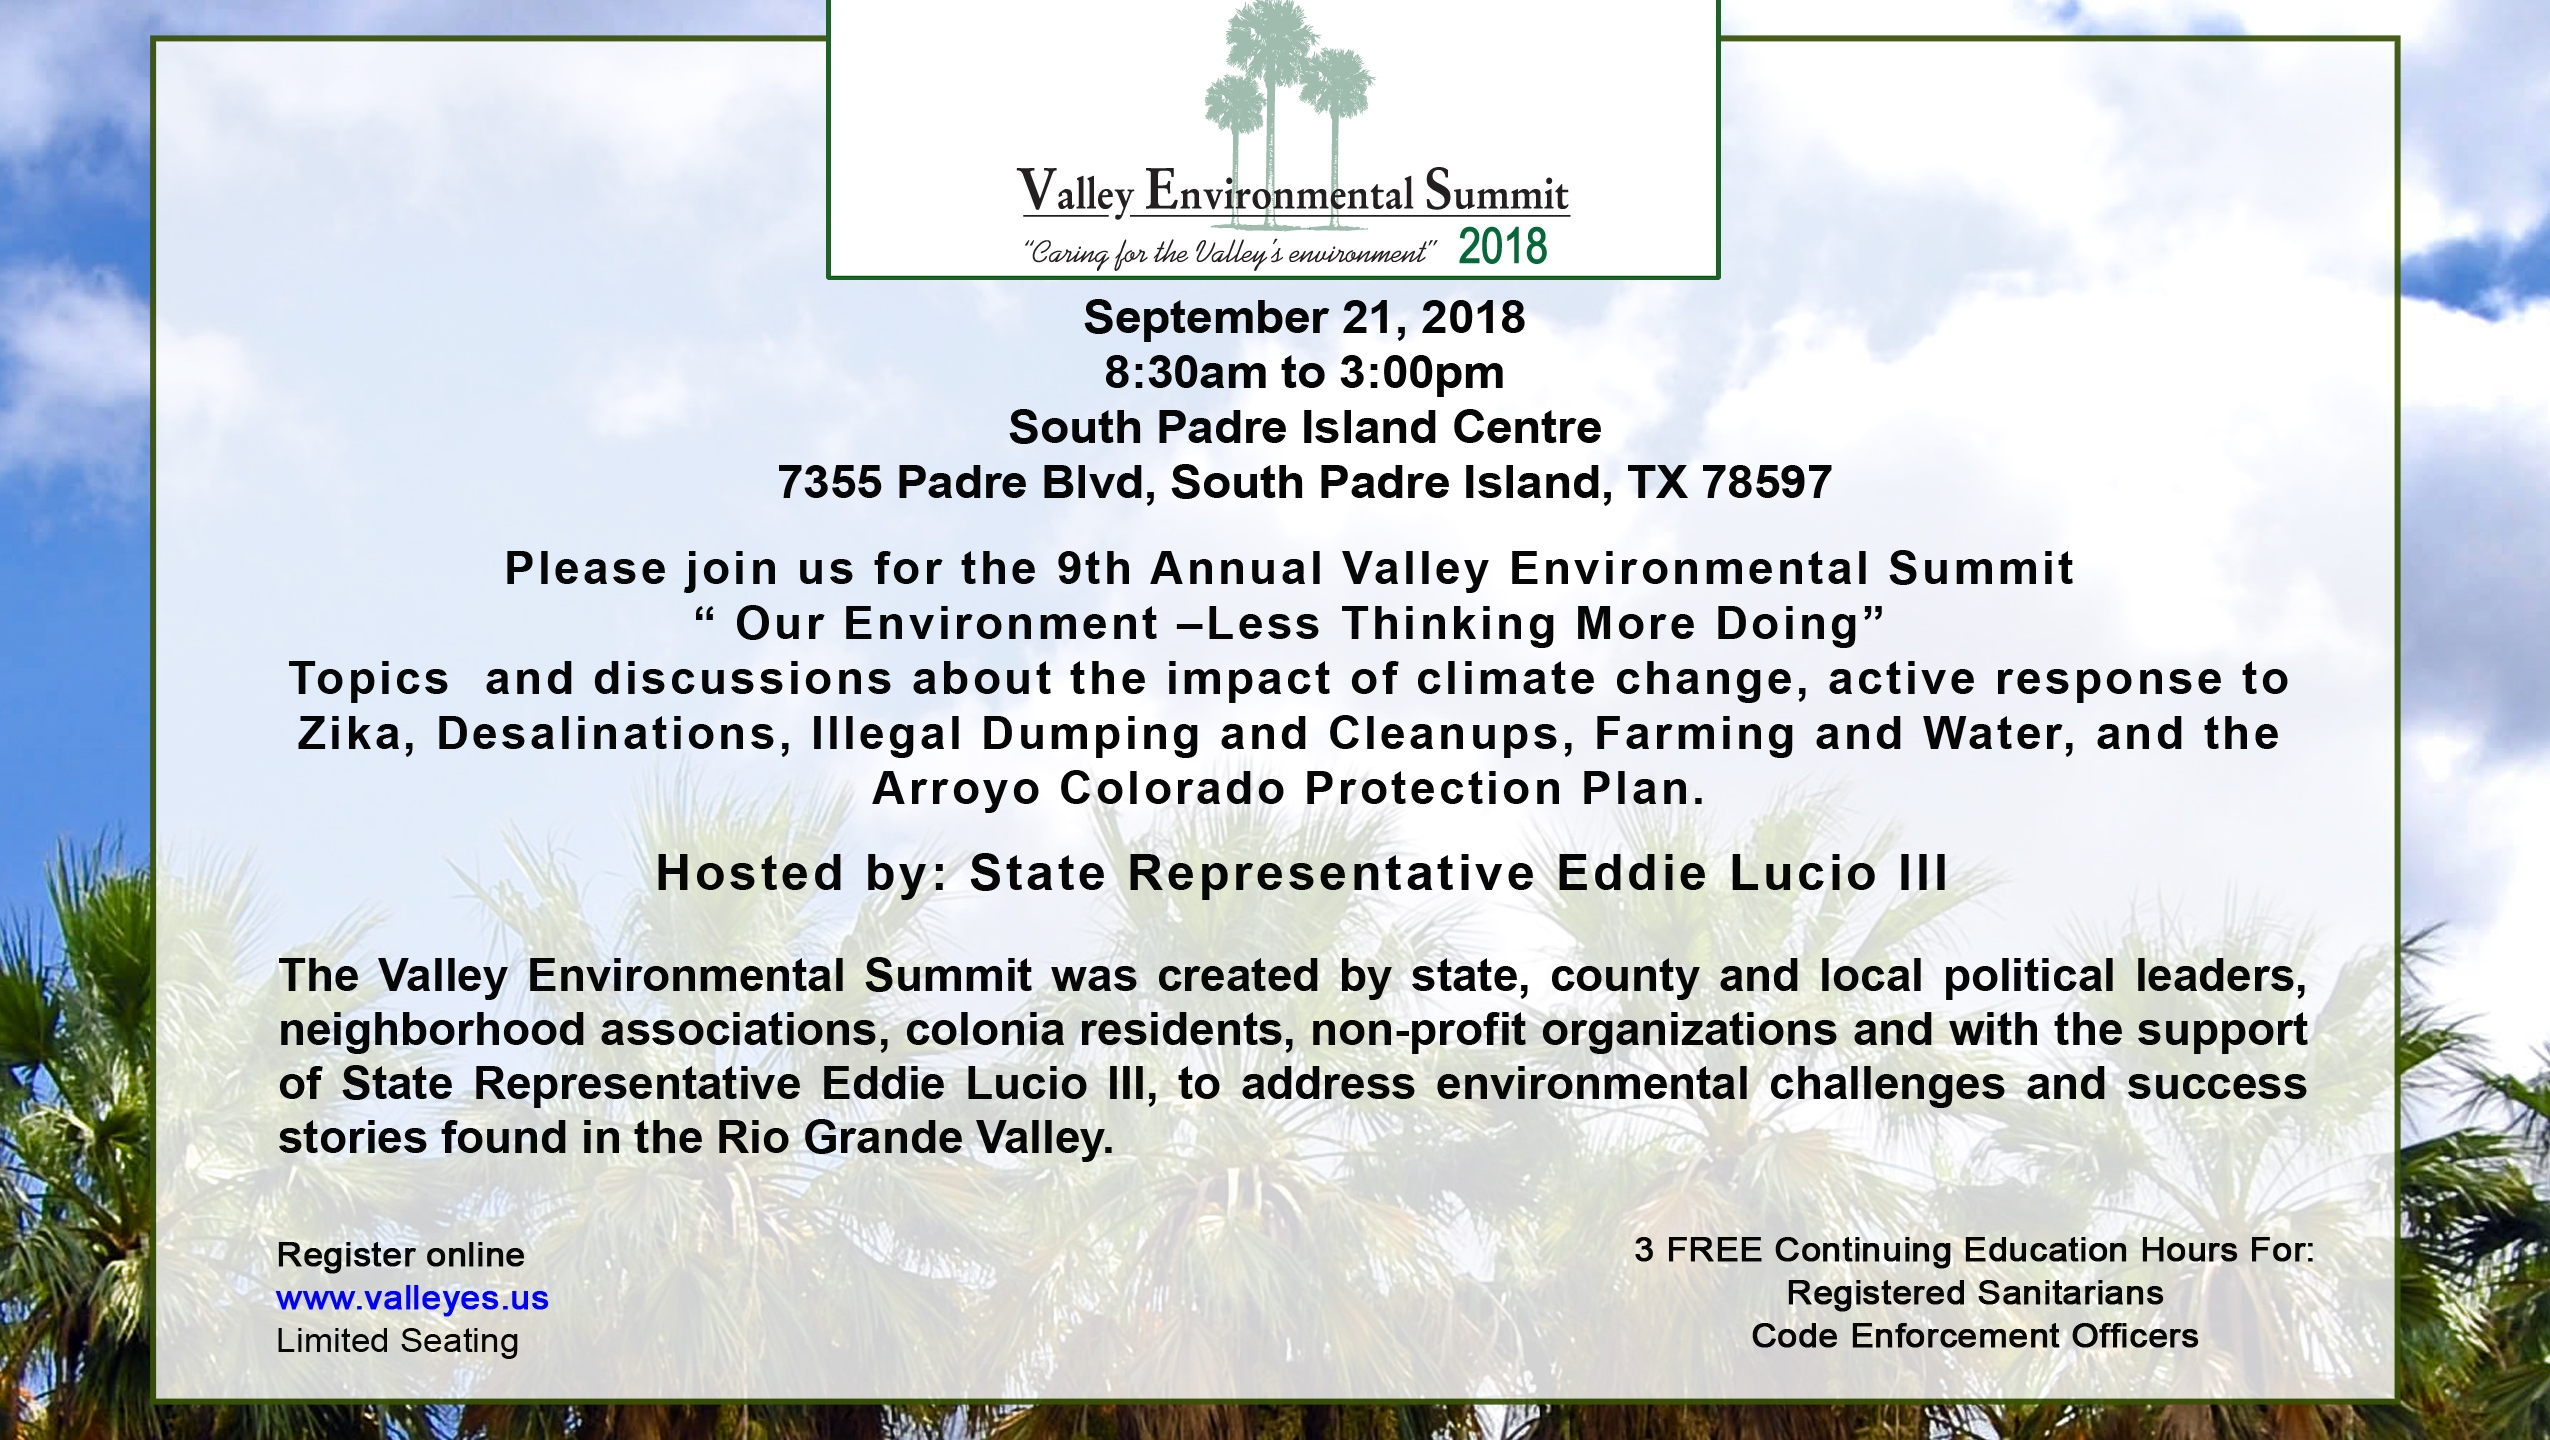 Valley Environmental Summit 2018 invitation_1534956796243.jpg.jpg